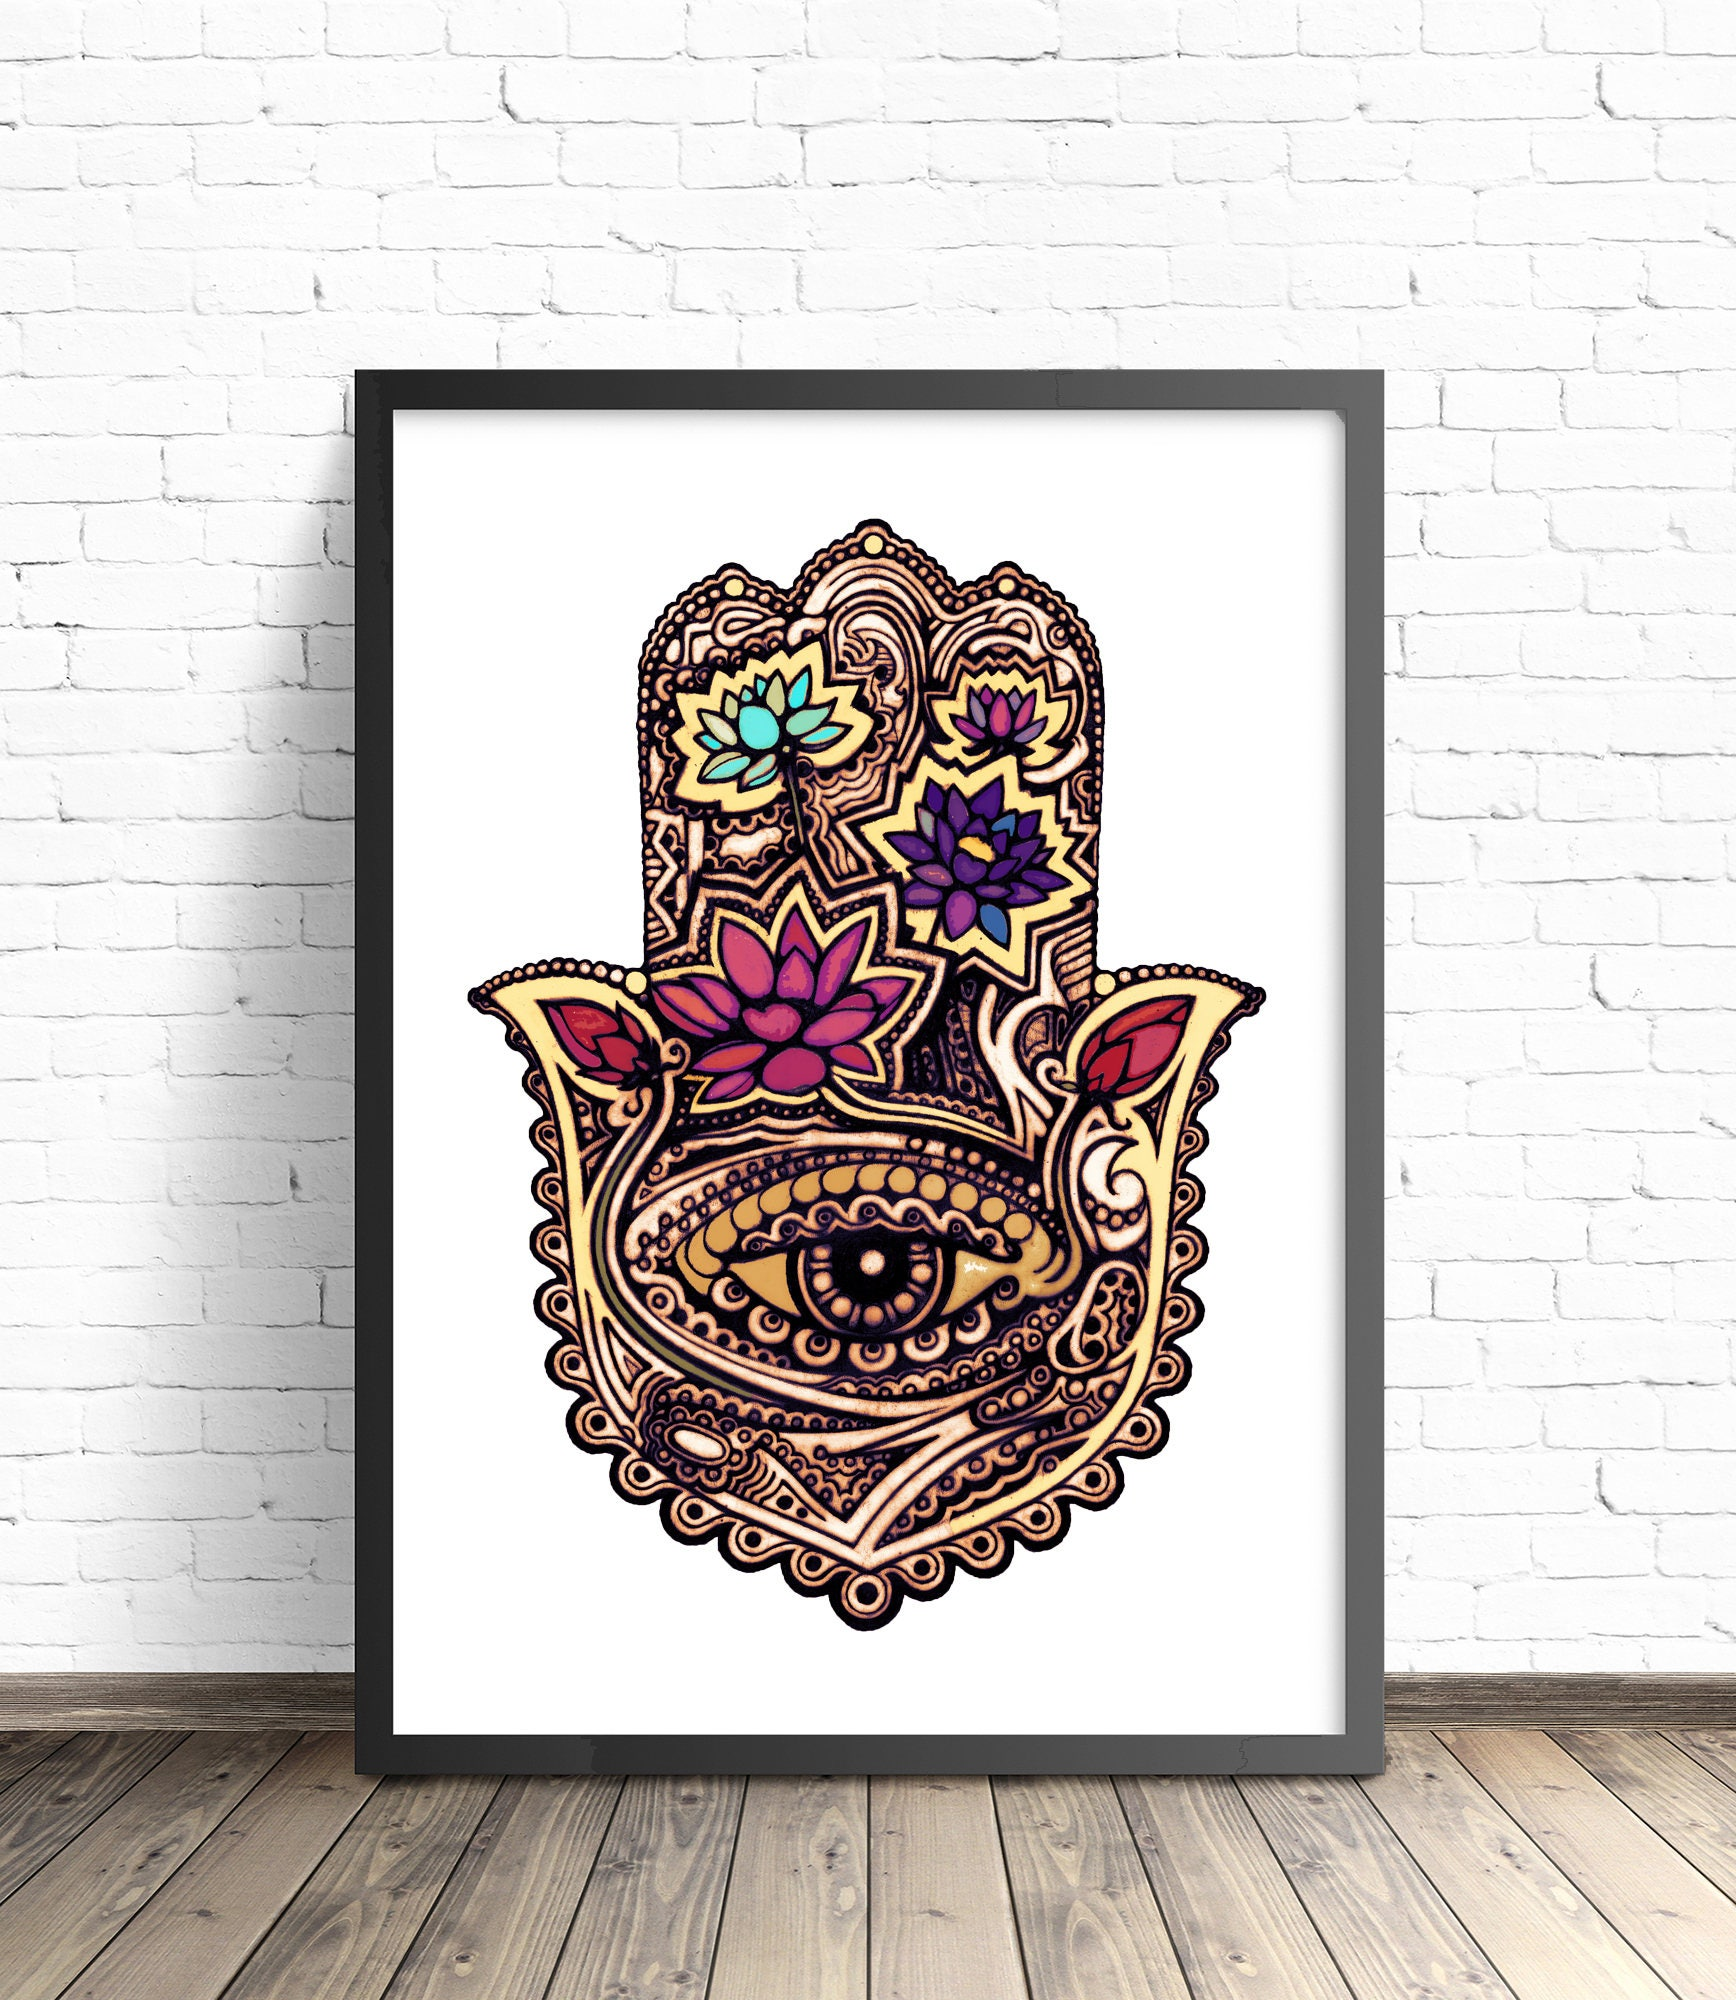 hamsa poster hamsa illustration hamsa home decor lotus